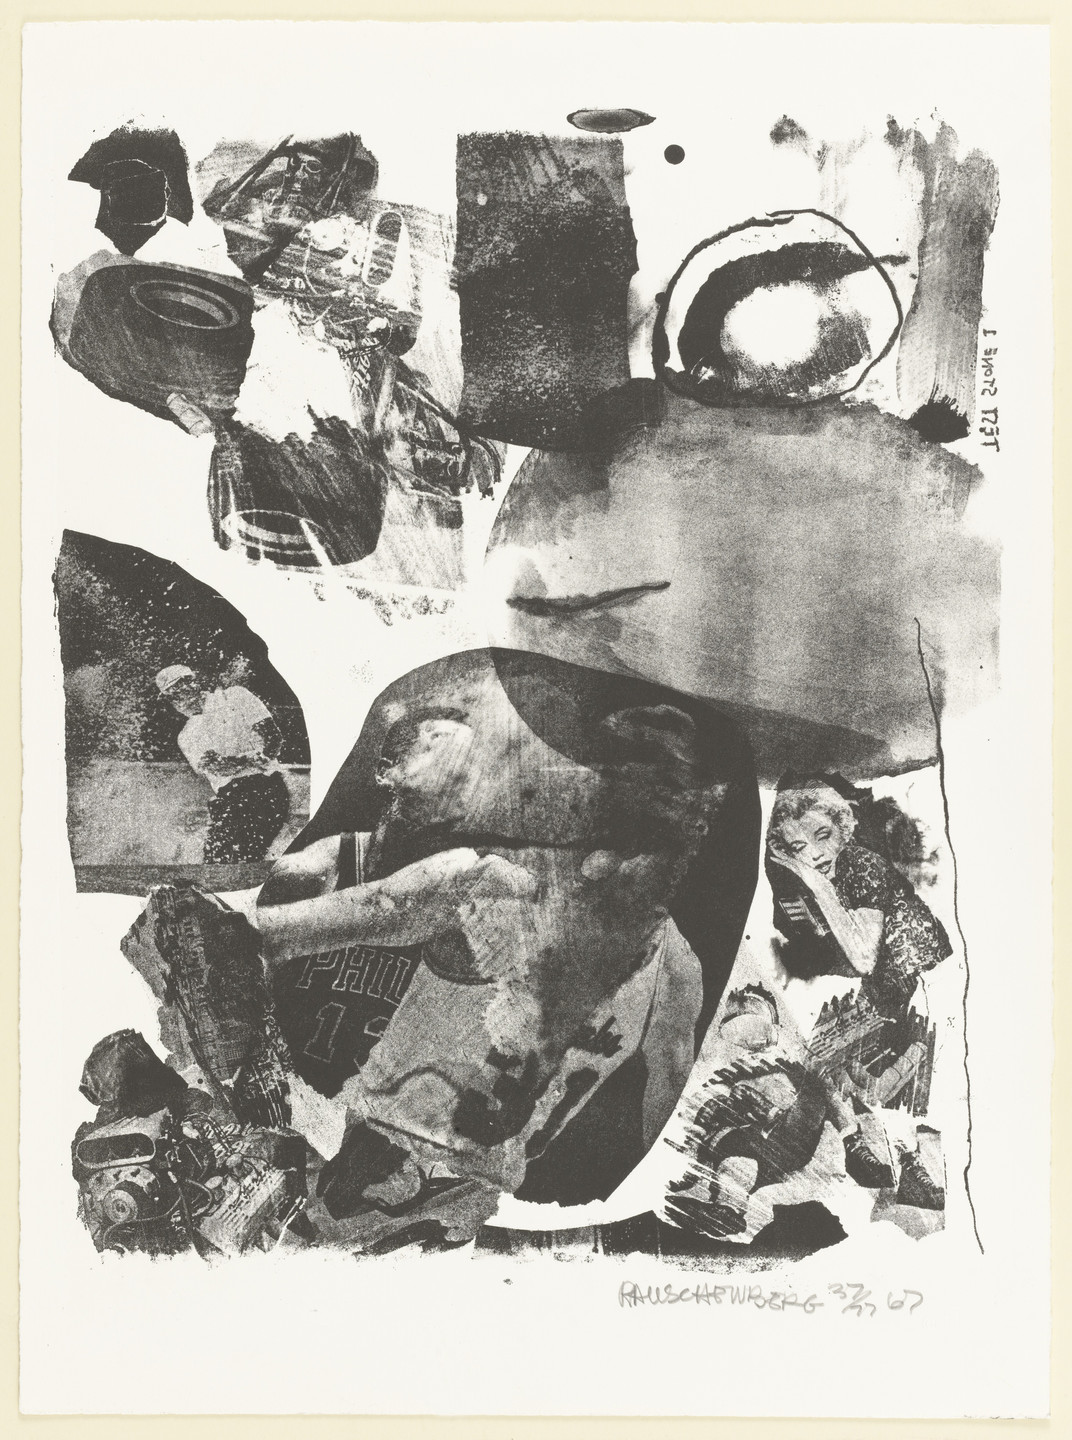 Robert Rauschenberg. Test Stone #1 (Marilyn Monroe) from Booster and 7 Studies. 1967